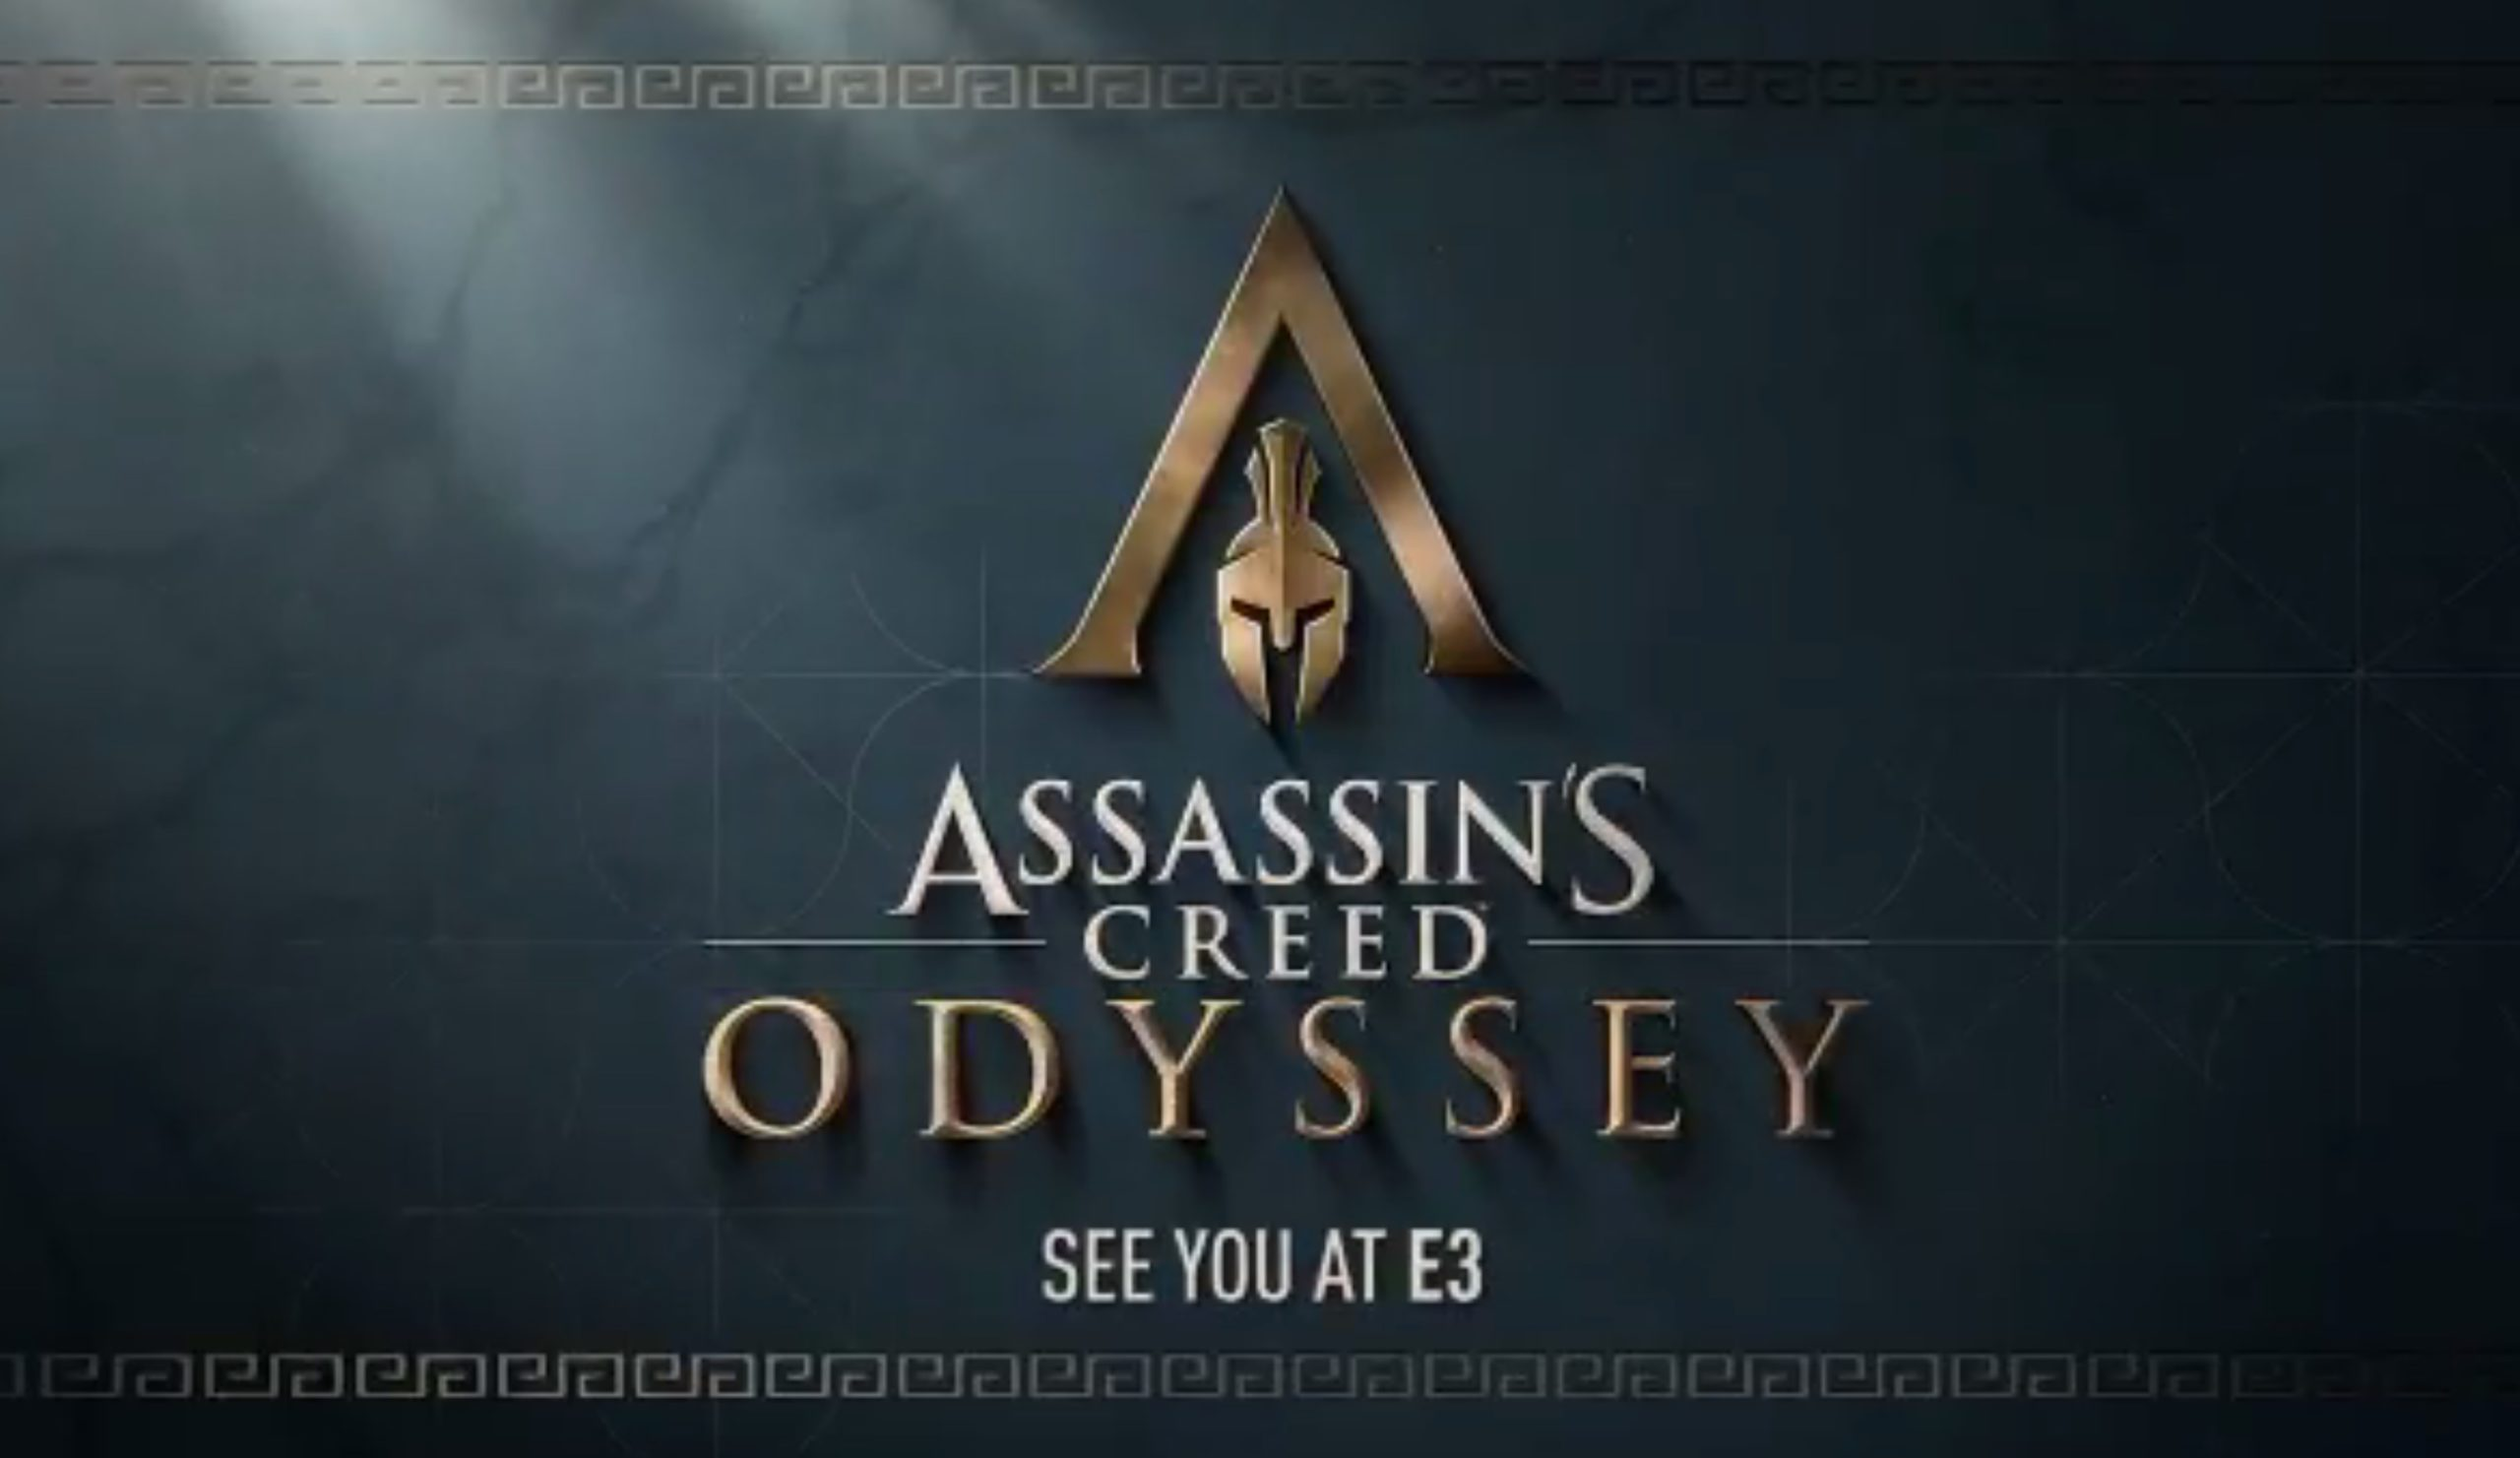 'Assassin's Creed Odyssey' Confirmed By Ubisoft